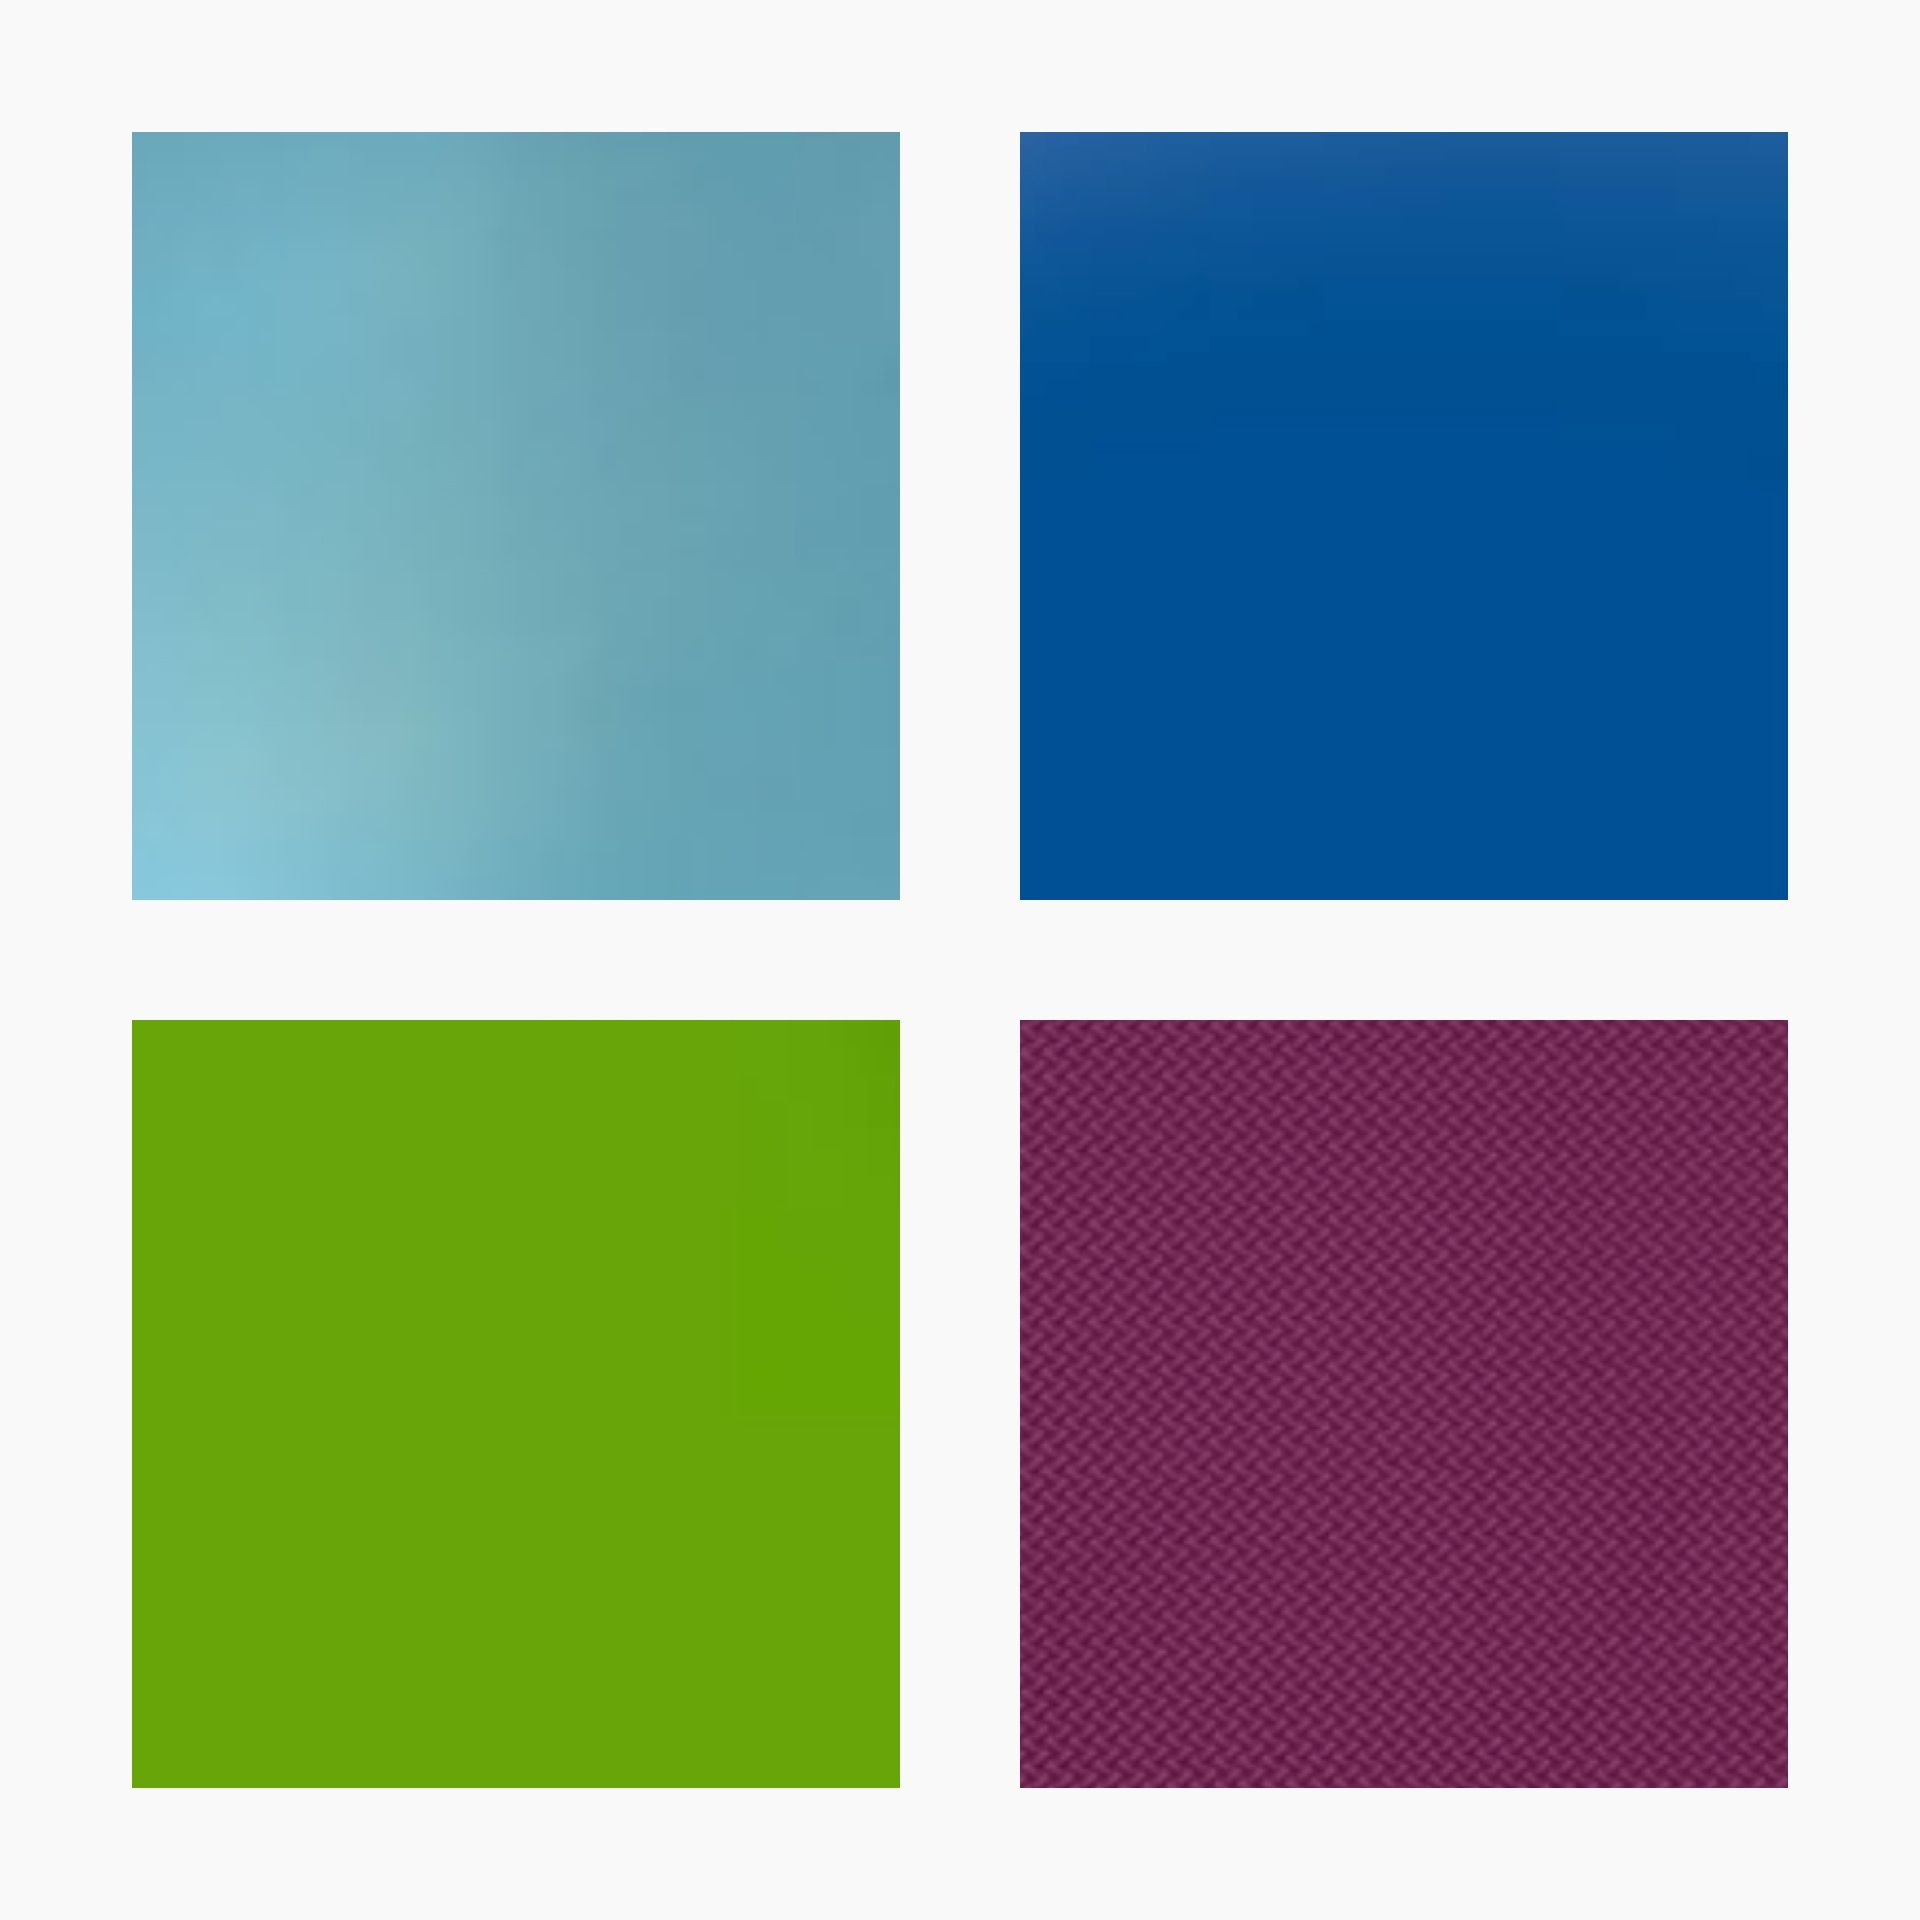 Color palette girls playroom peacock colors jewel - Jewel tones color palette ...